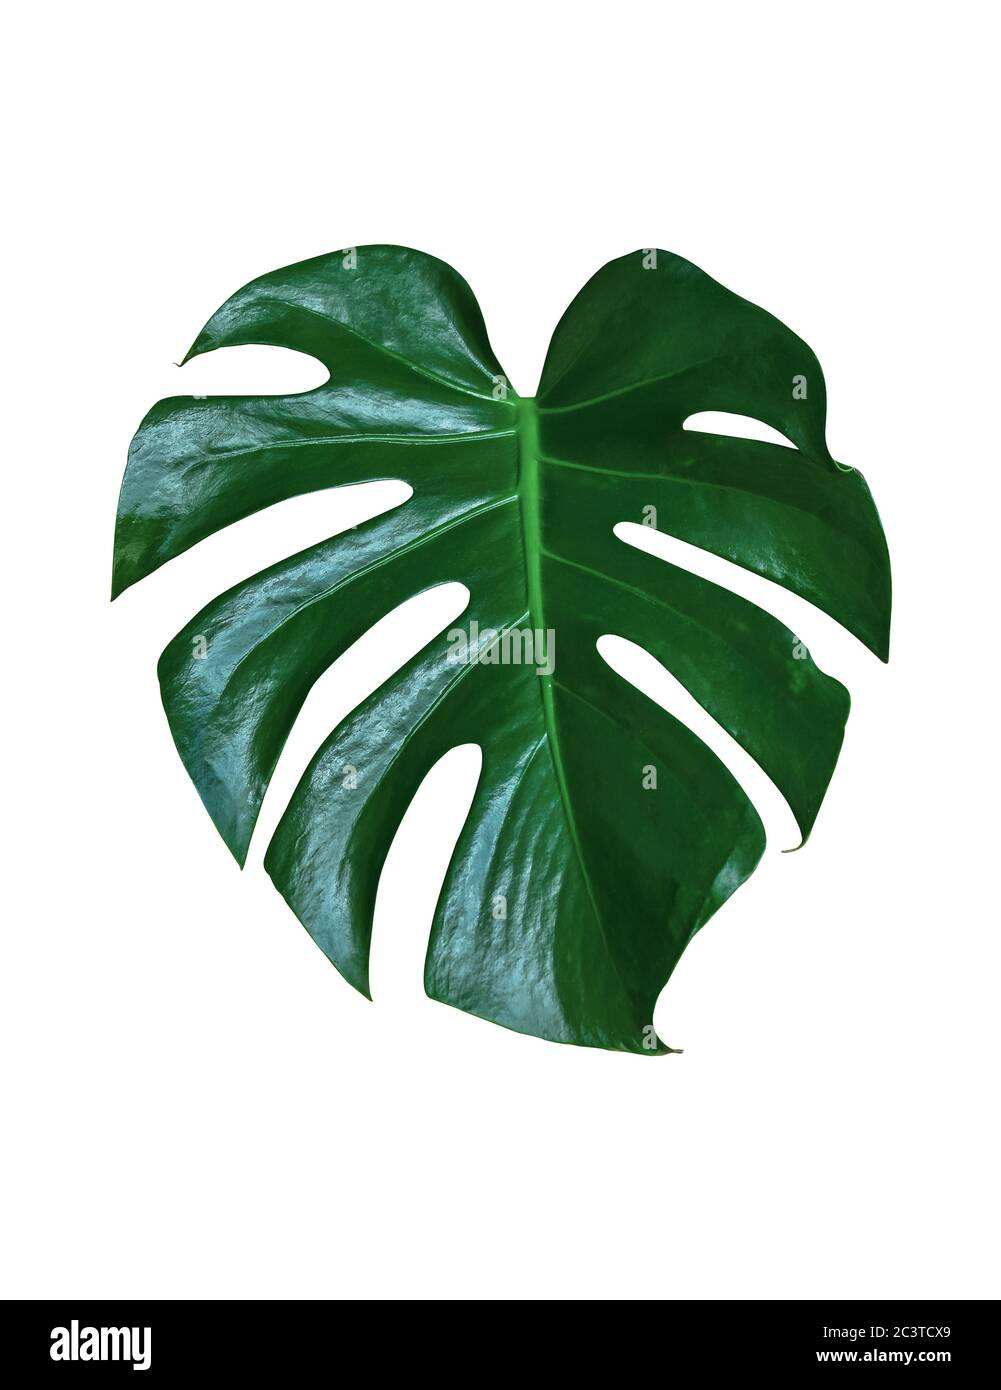 Dark Green Leaves Of Monstera Or Split Leaf Philodendron Monstera Deliciosa The Tropical Foliage Houseplant Isolated On White Background Clipping P Stock Photo Alamy